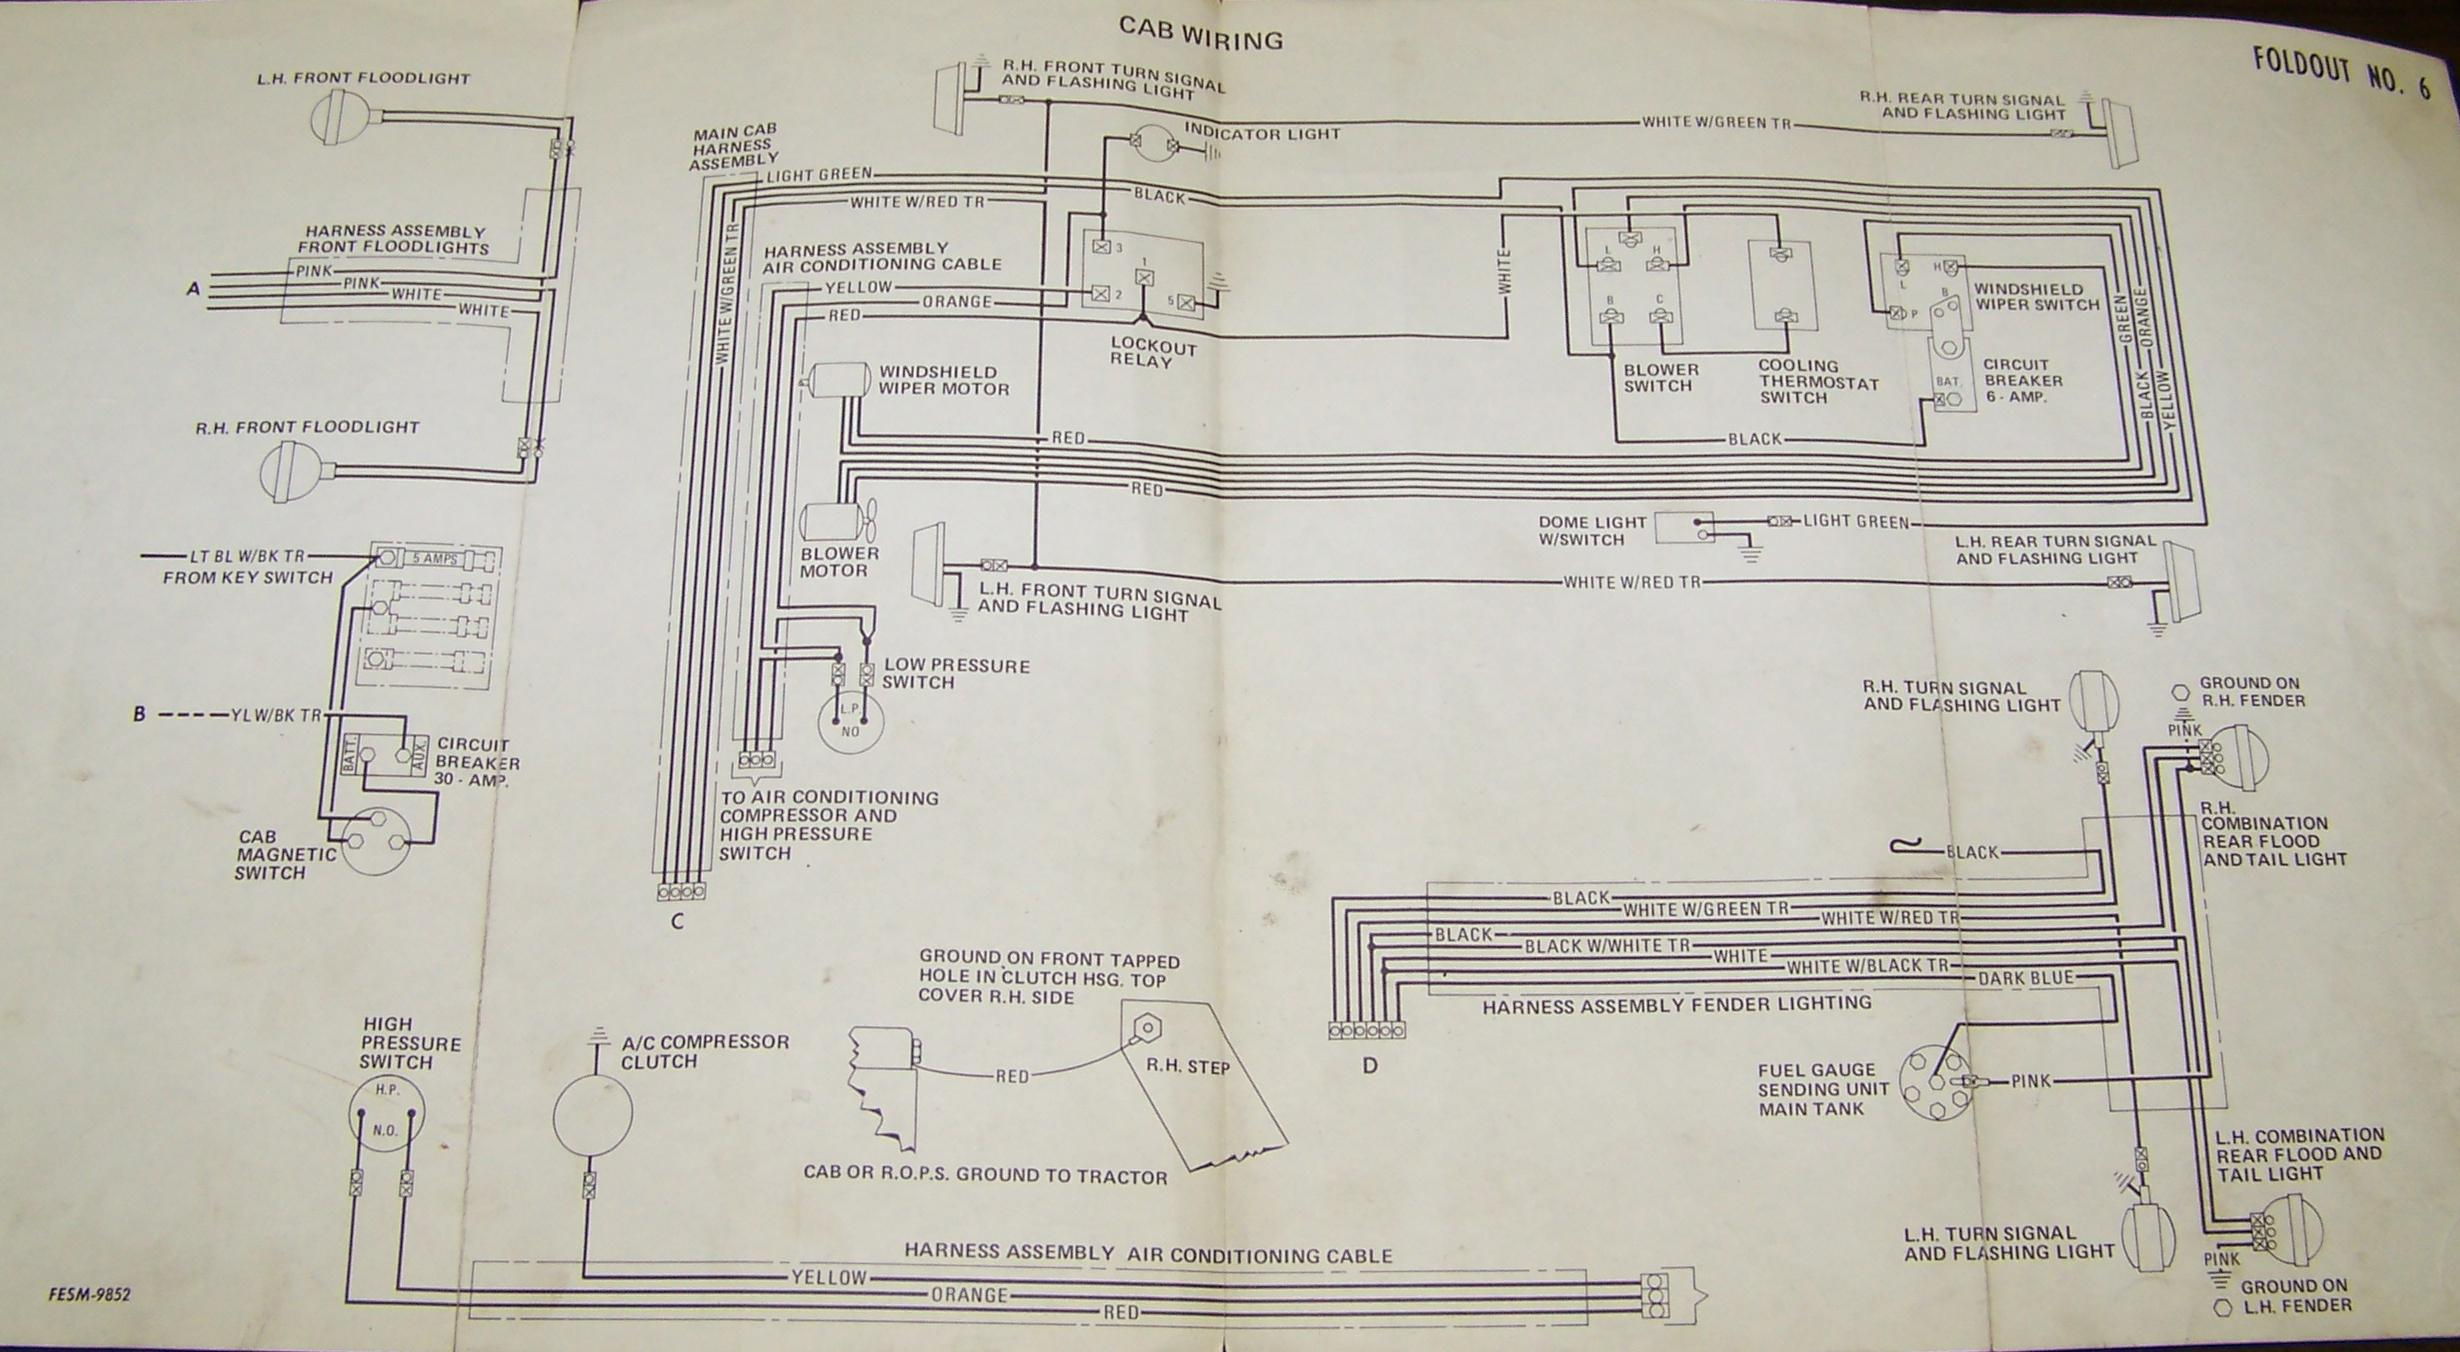 2001 mustang mach 460 stereo wiring diagram carter & gruenewald co. inc. - ih-farmall tractor ... farmall 460 light wiring diagram